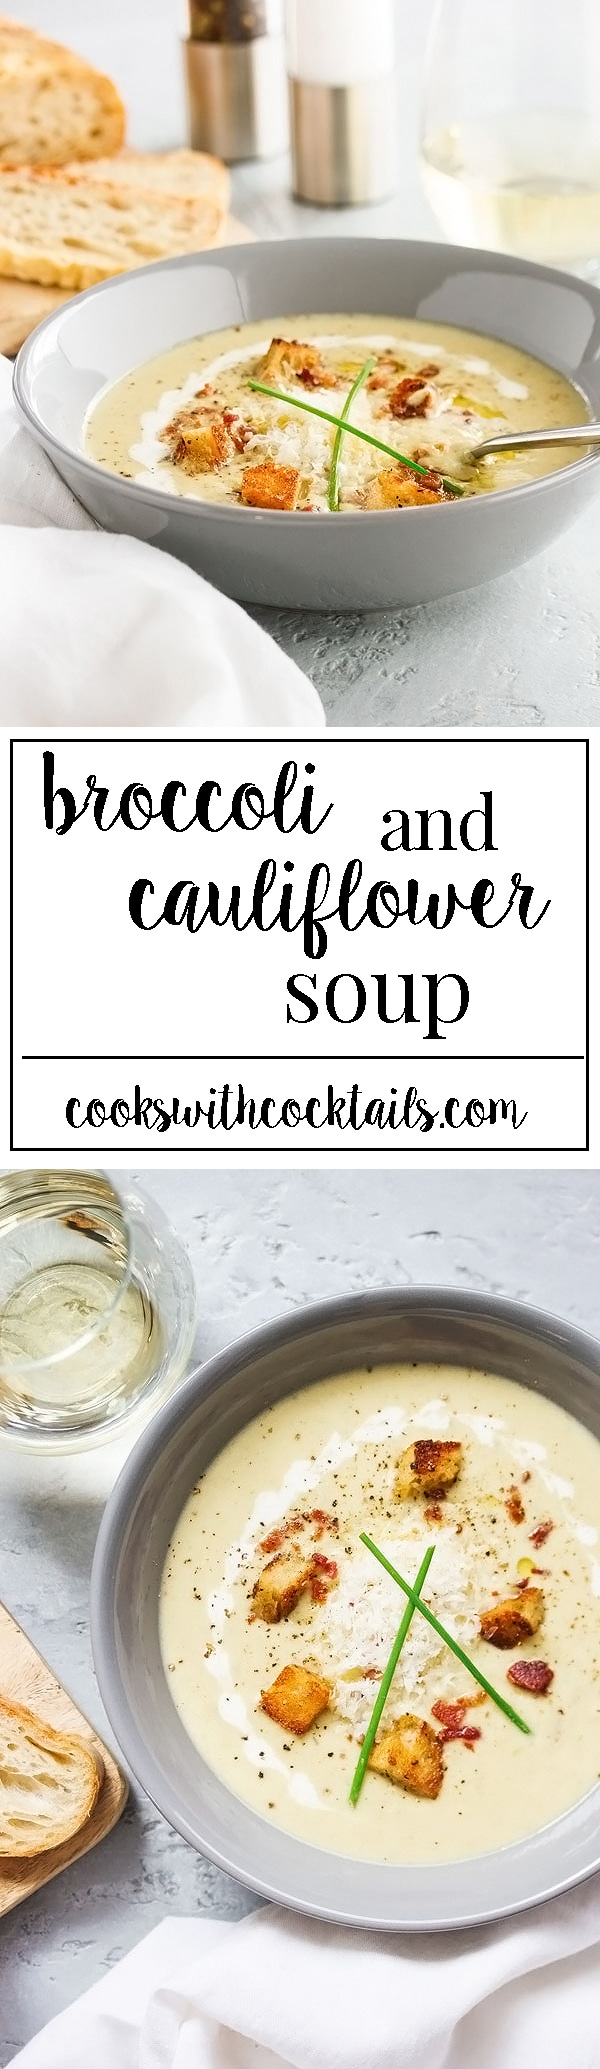 This broccoli and cauliflower soup is a creamy and cheesy soup thats packed full of nutrition and flavor. Low carb comfort food that's quick and easy recipe for a weeknight meal. The homemade croutonsare out of this world amazing and are easy to make. We will show you how. #broccolisoup #cauliflowersoup #vegetablesoup #creamysoup #homemade #souprecipes